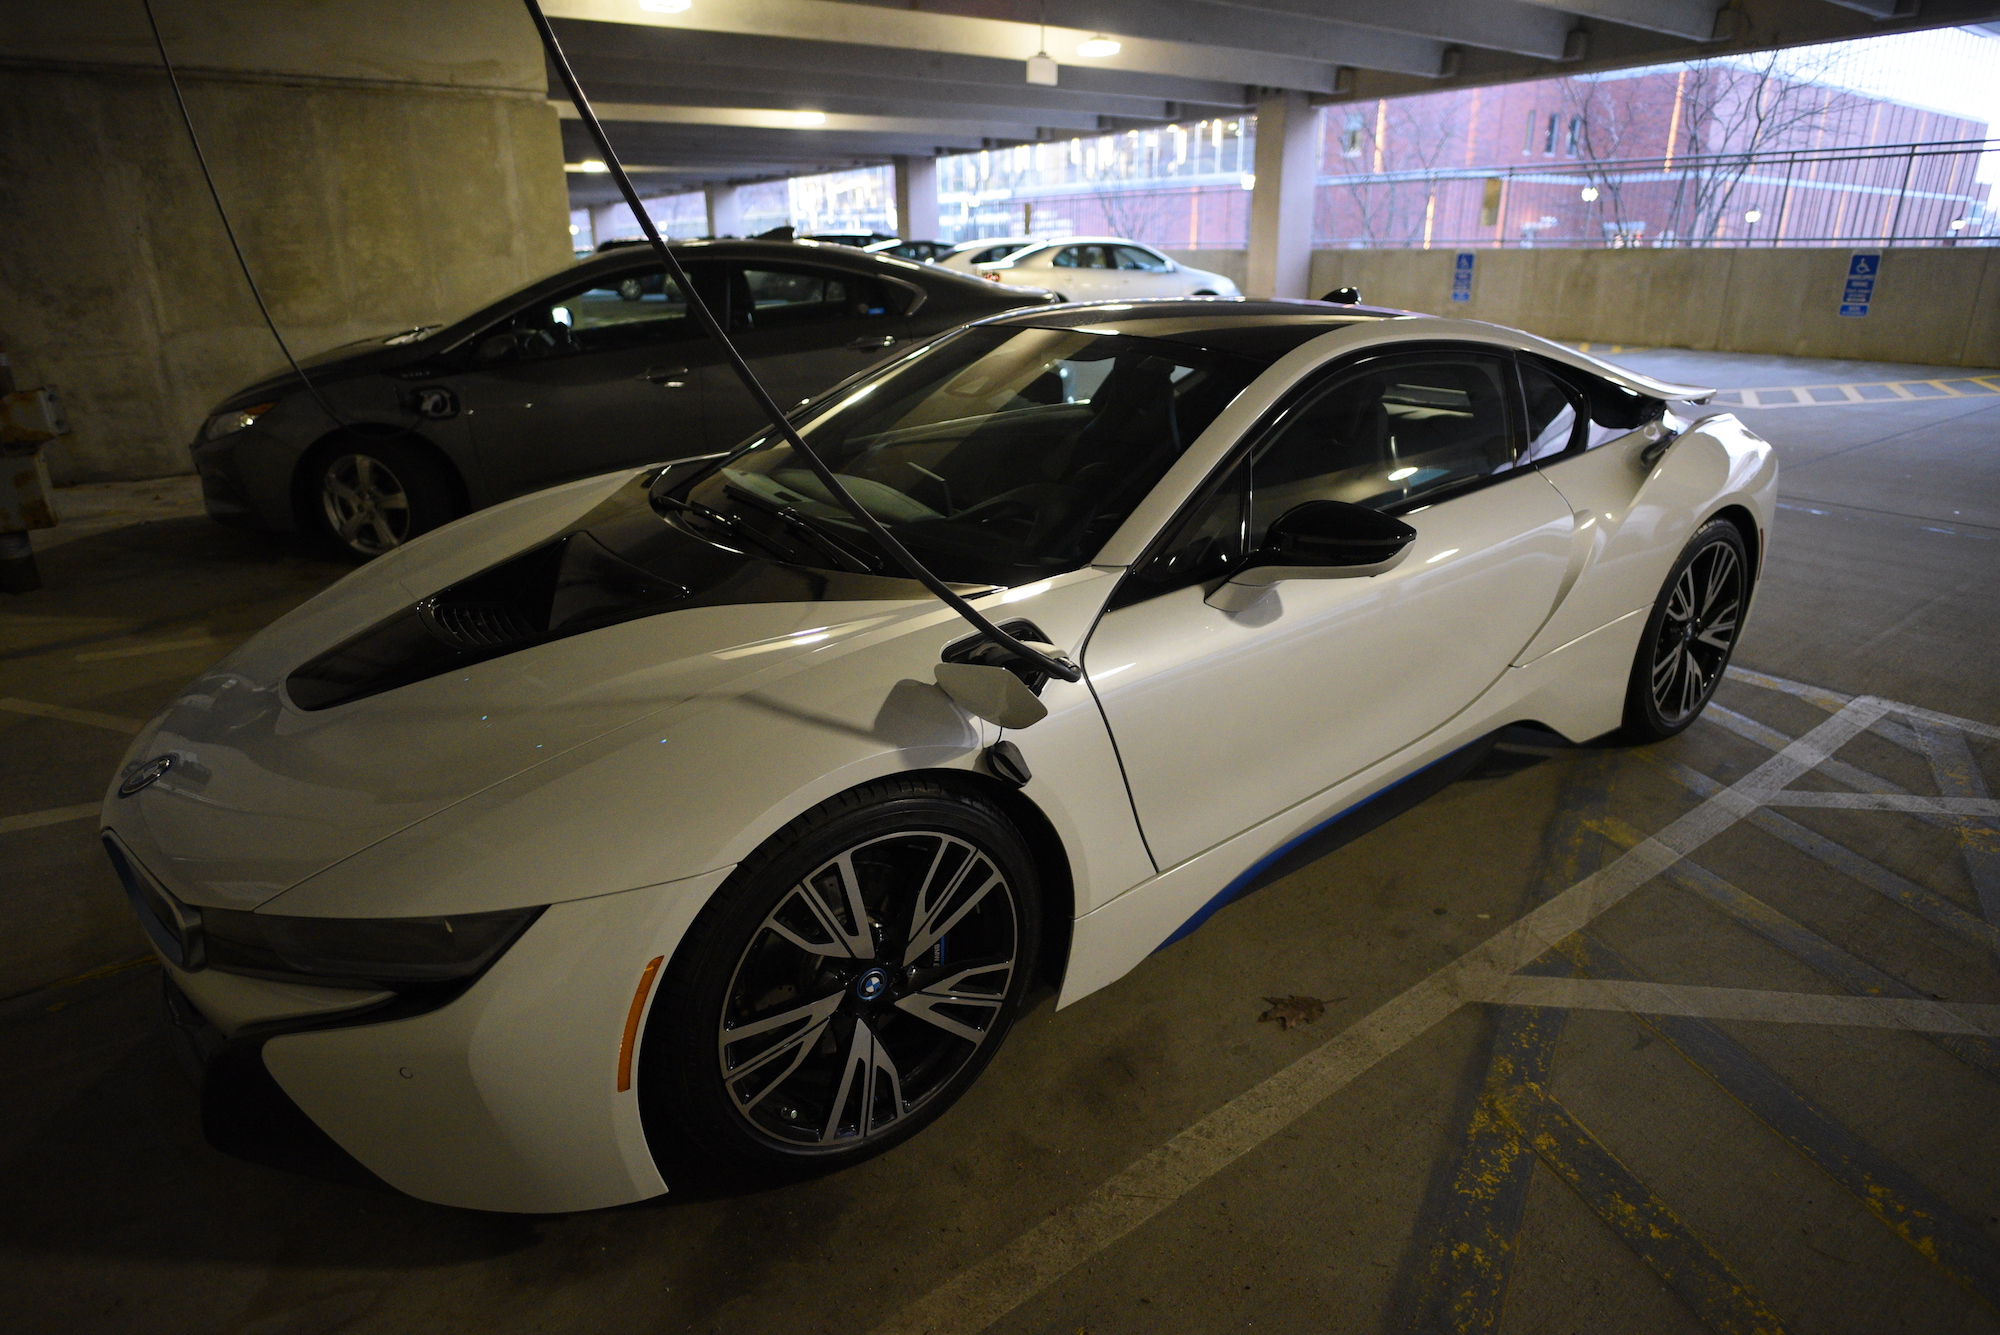 A BMW i8 parks at South garage and get charged by the on-campus charge station. New report finds $51.6 million in Volkswagen Settlement Funds headed  to Connecticut could help accelerate all-electric transportation revolution. (Zhelun Lang/The Daily Campus)